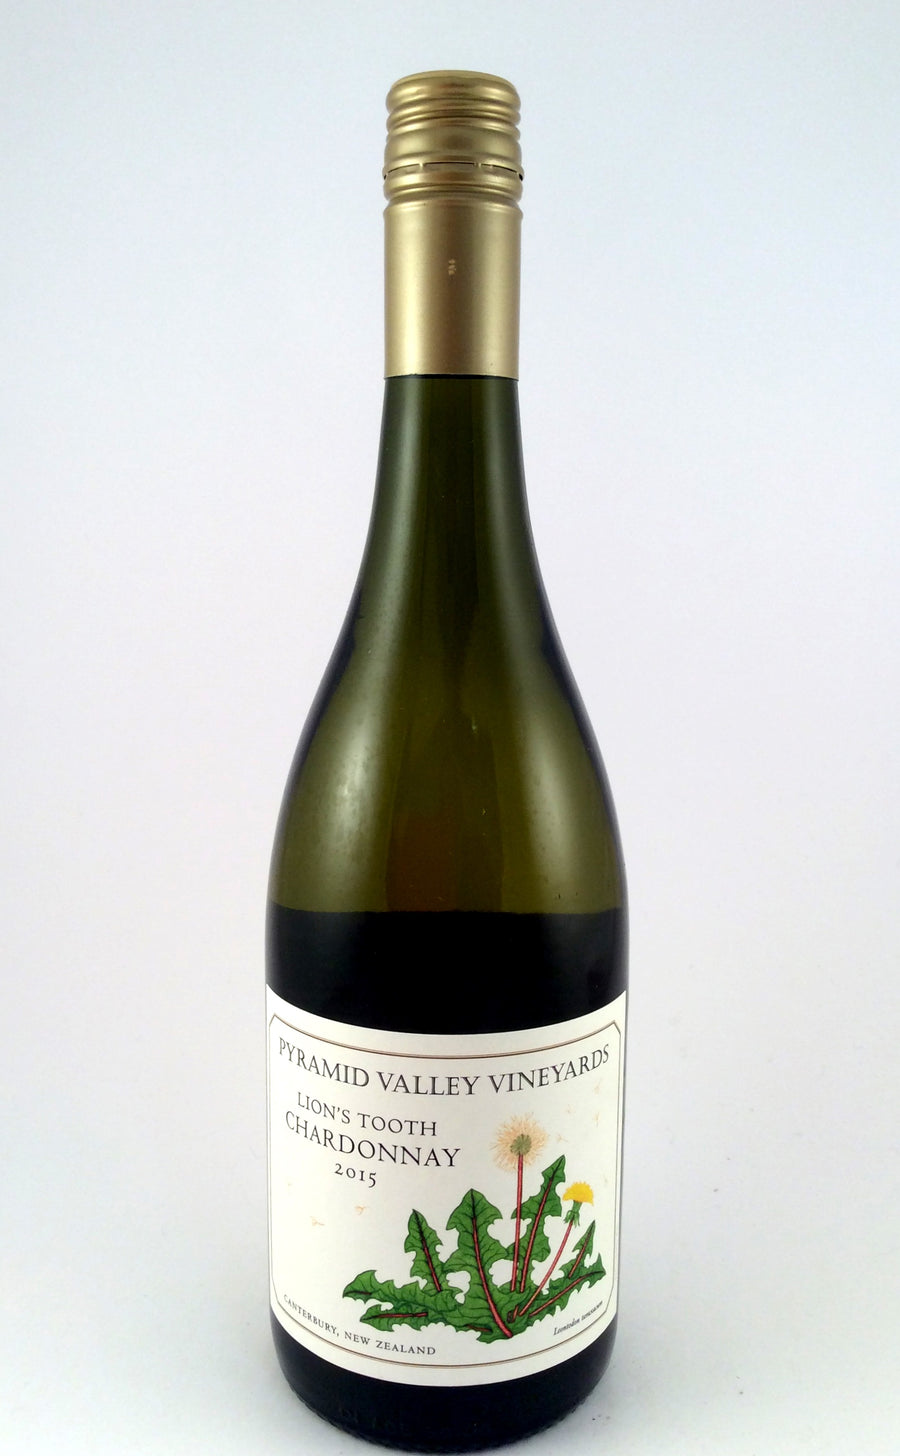 Pyramid Valley 'Lion's Tooth' Chardonnay - Wineseeker